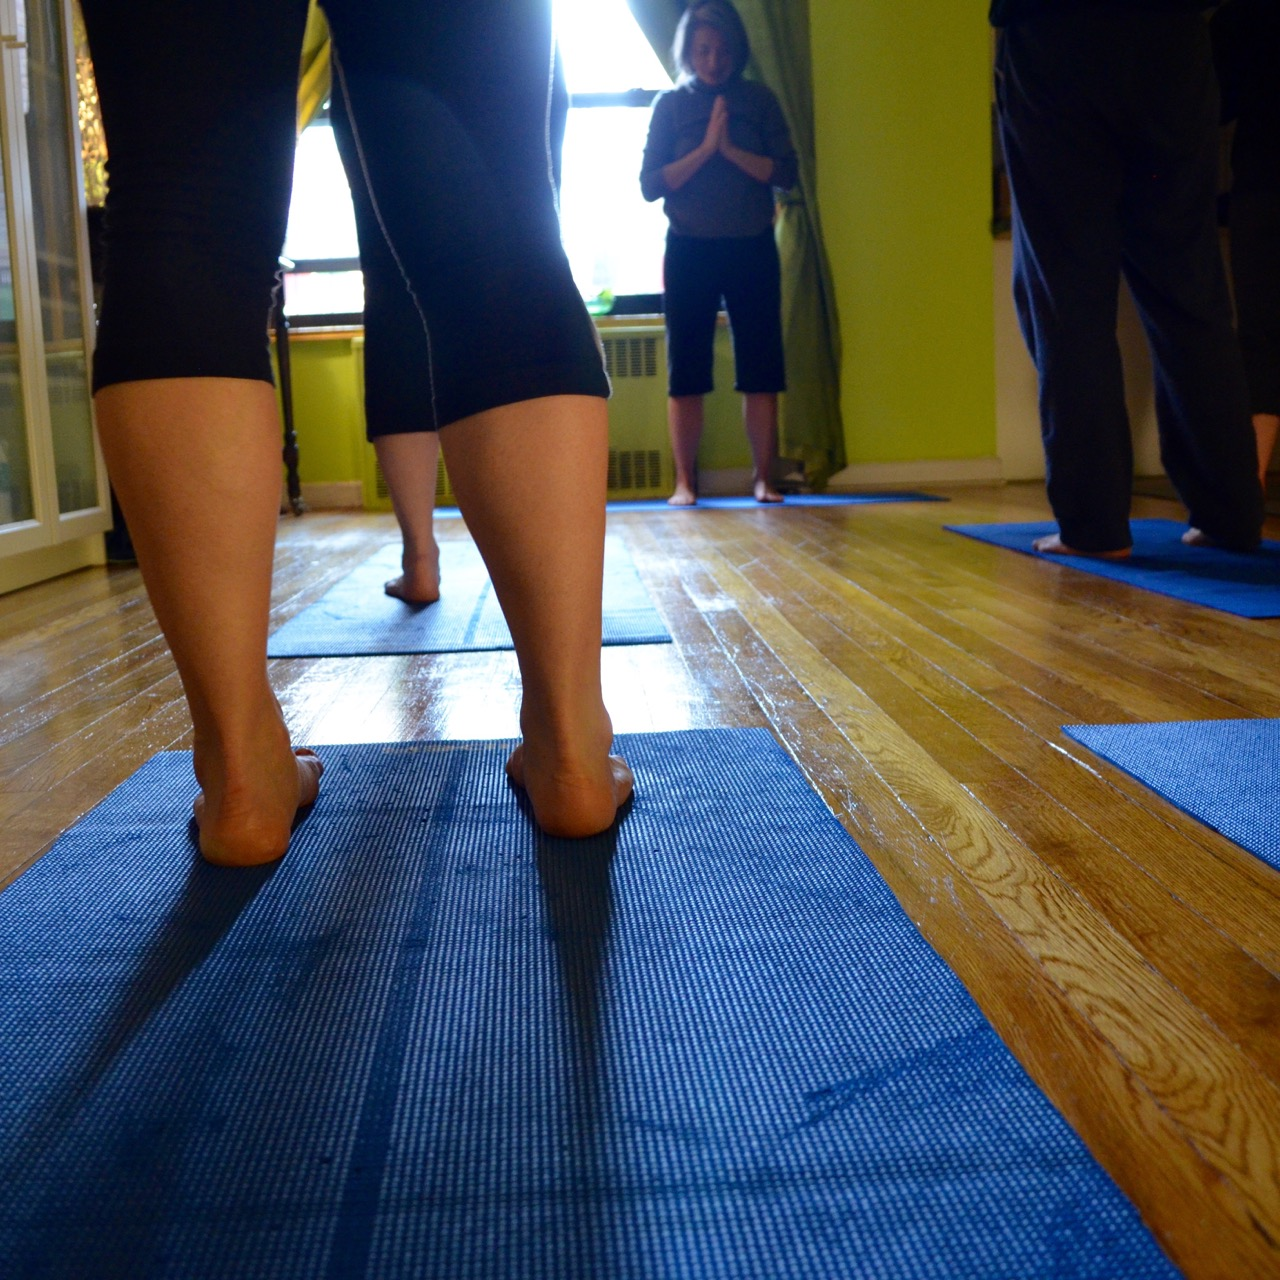 A punk rock singer turned yoga teacher in Jackson Heights got rid of all her furniture to turn her studio apartment into a yoga studio.